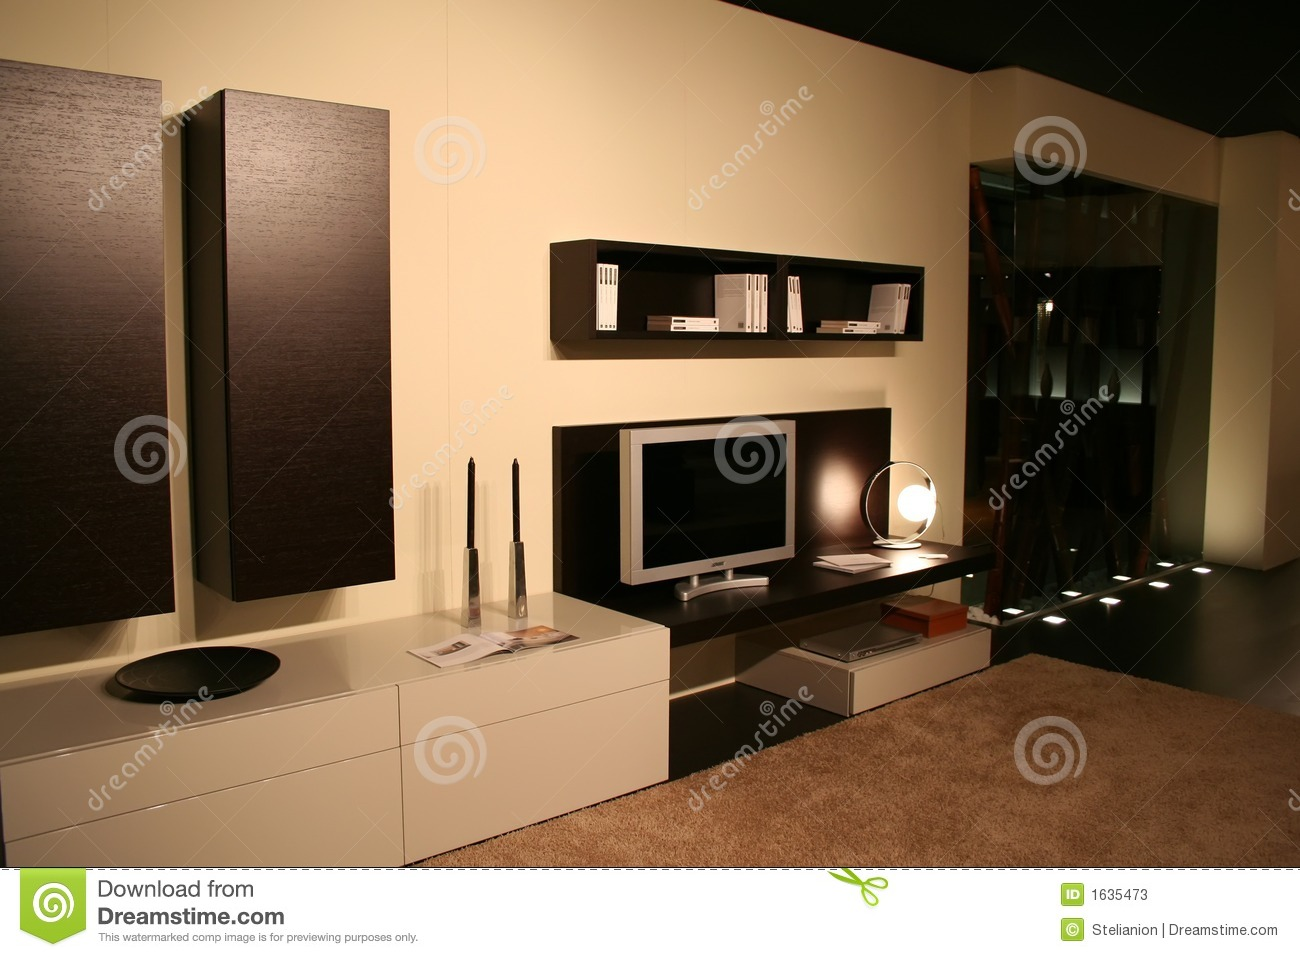 Slaapkamer Zandkleur Living Room Decorating Ideas Stock Photos Image 1635473